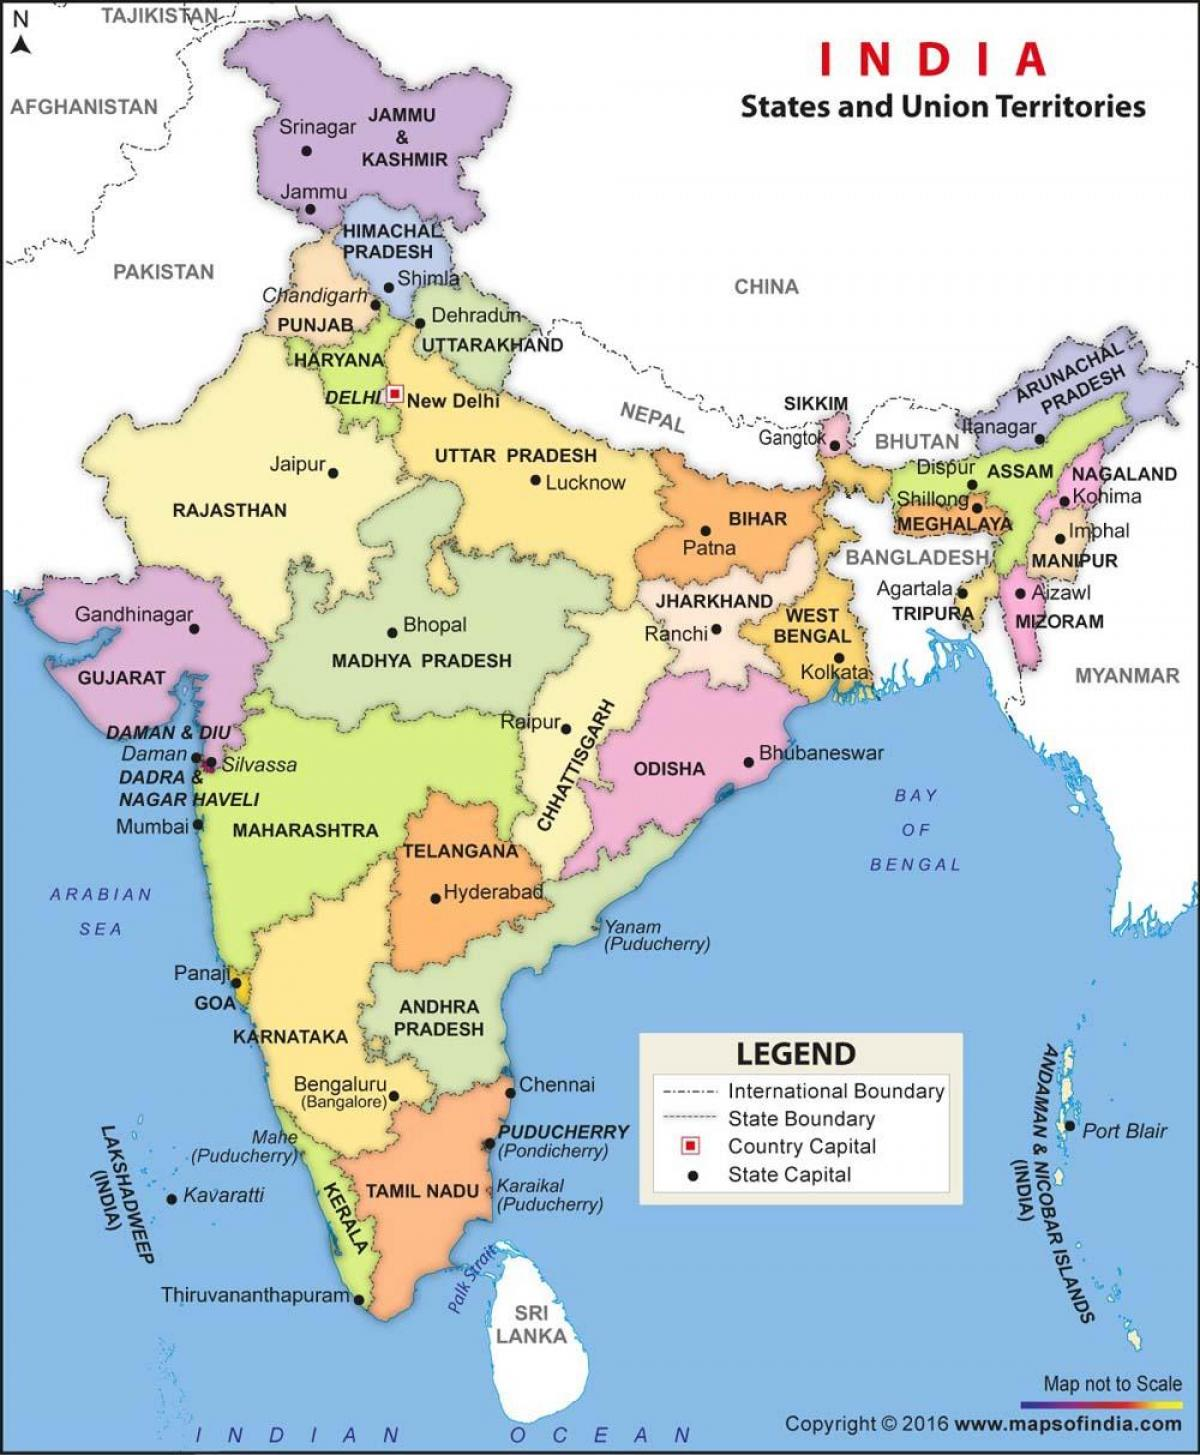 India political states map - India political map states and ... on india bali map, india se, india map usa, india russia map, india on map, india yellow river map, india south asia, india continent map, india australia map, india heart map, india europe map, india region map, india population growth map, india in asia, mughal empire india map, tohoku japan earthquake 2011 map, india mongol empire map, india iran map, india and surrounding country map, africa map,